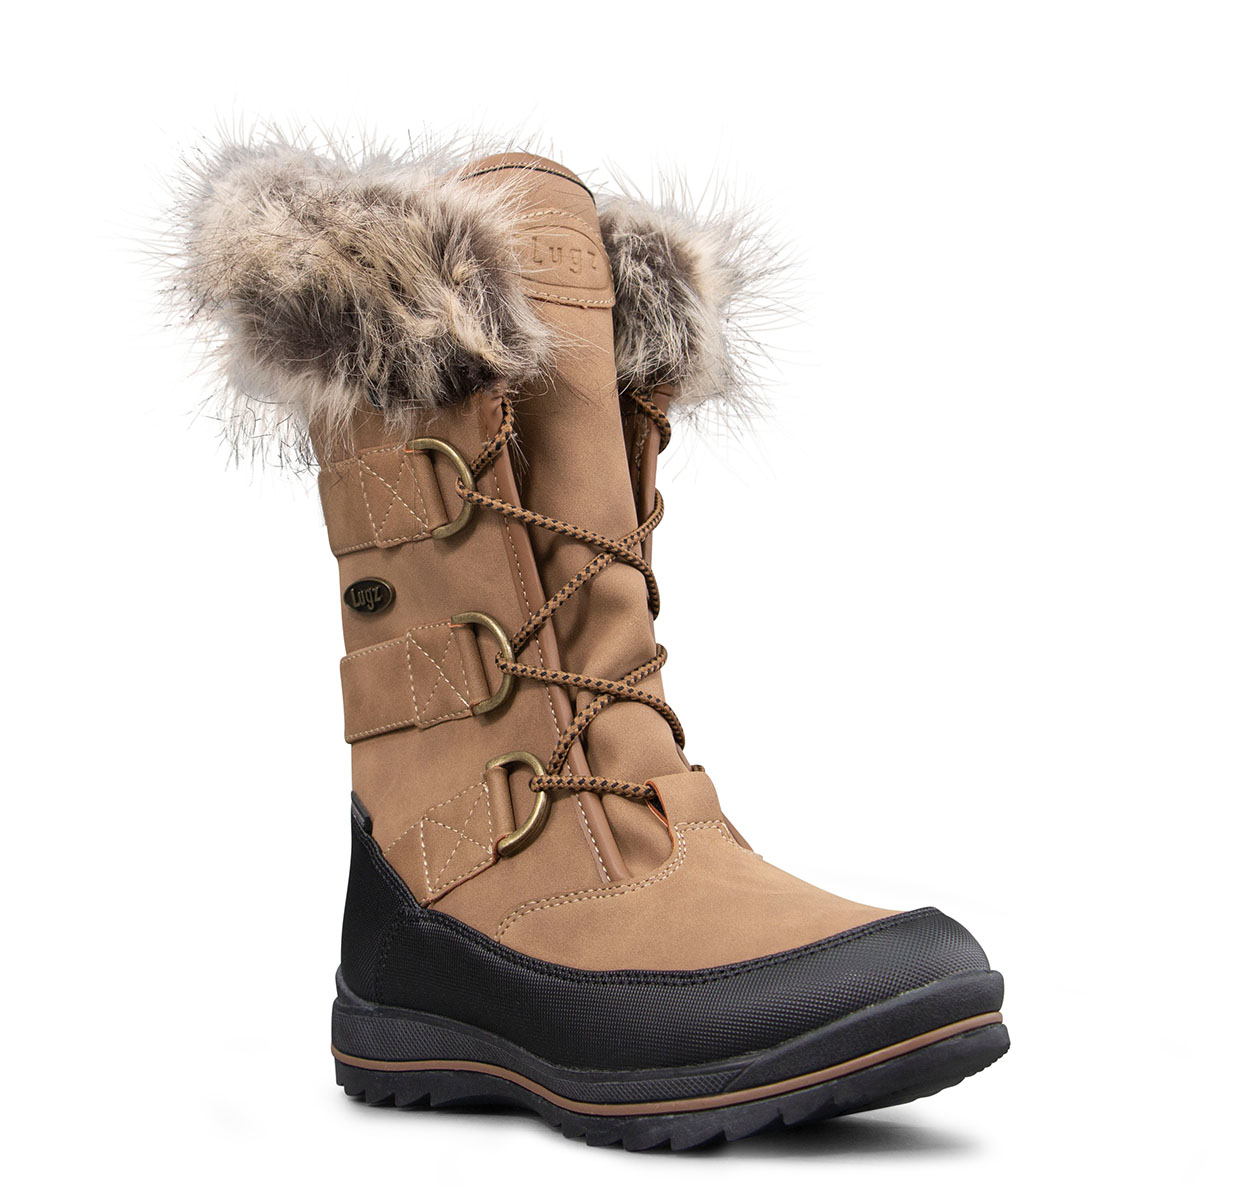 Women's Tundra Fold Down Boot (Choose Your Color: ROASTED CASHEW/BROWN/BLACK, Choose Your Size: 6.0)